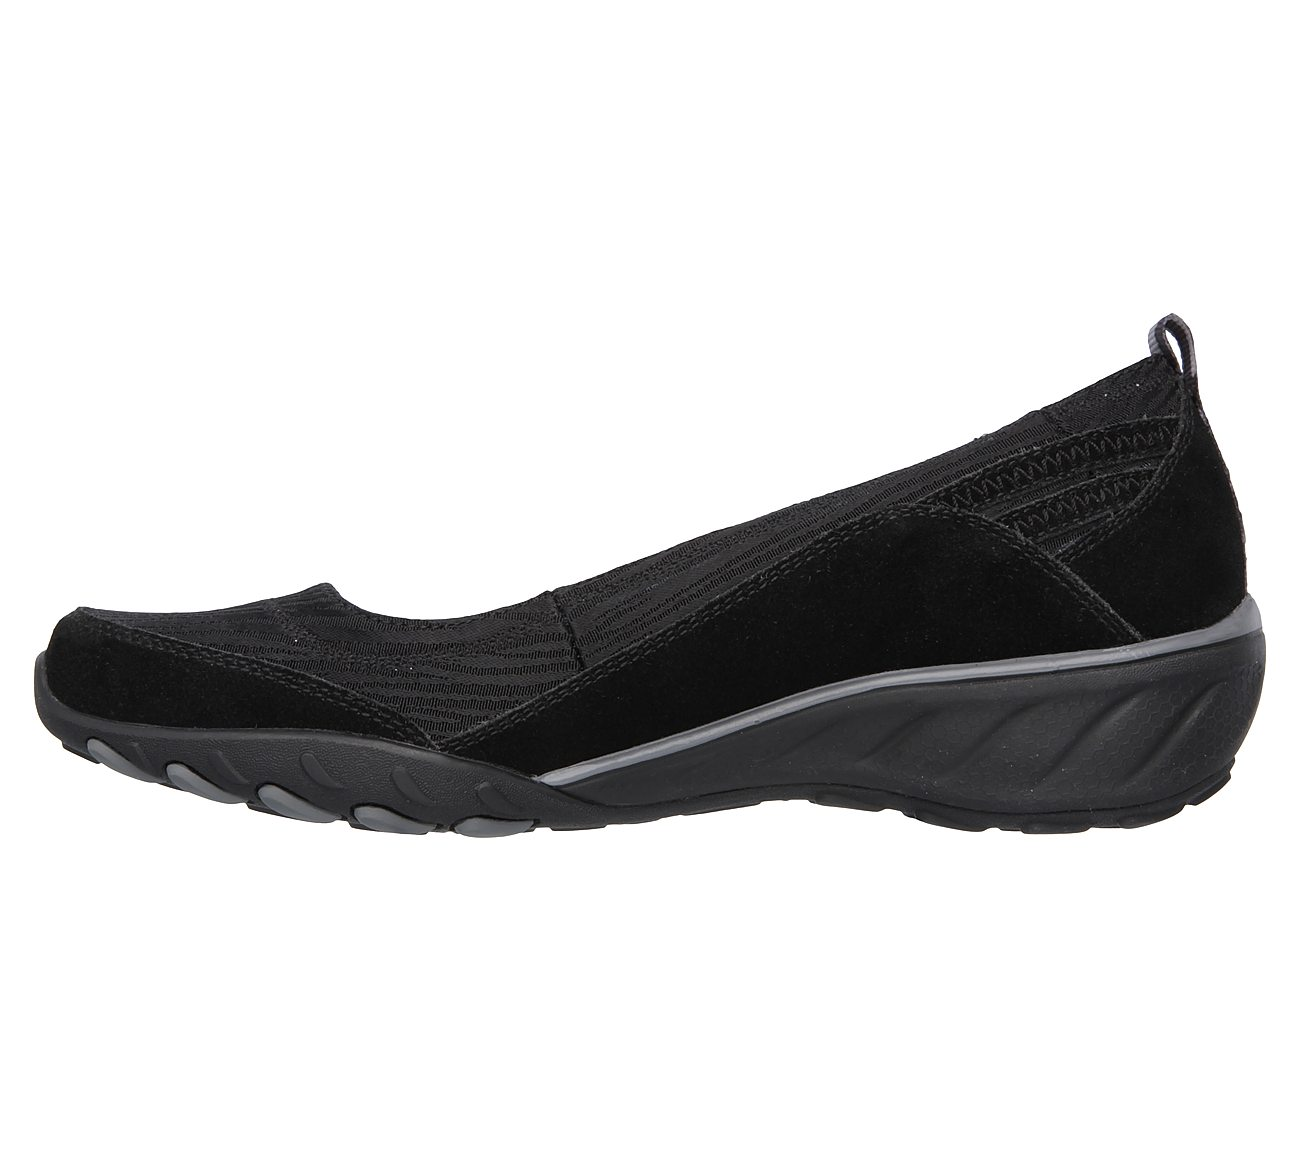 515d1483b6b1 Buy SKECHERS Relaxed Fit  Savvy - Dressed Up Active Shoes only  41.00